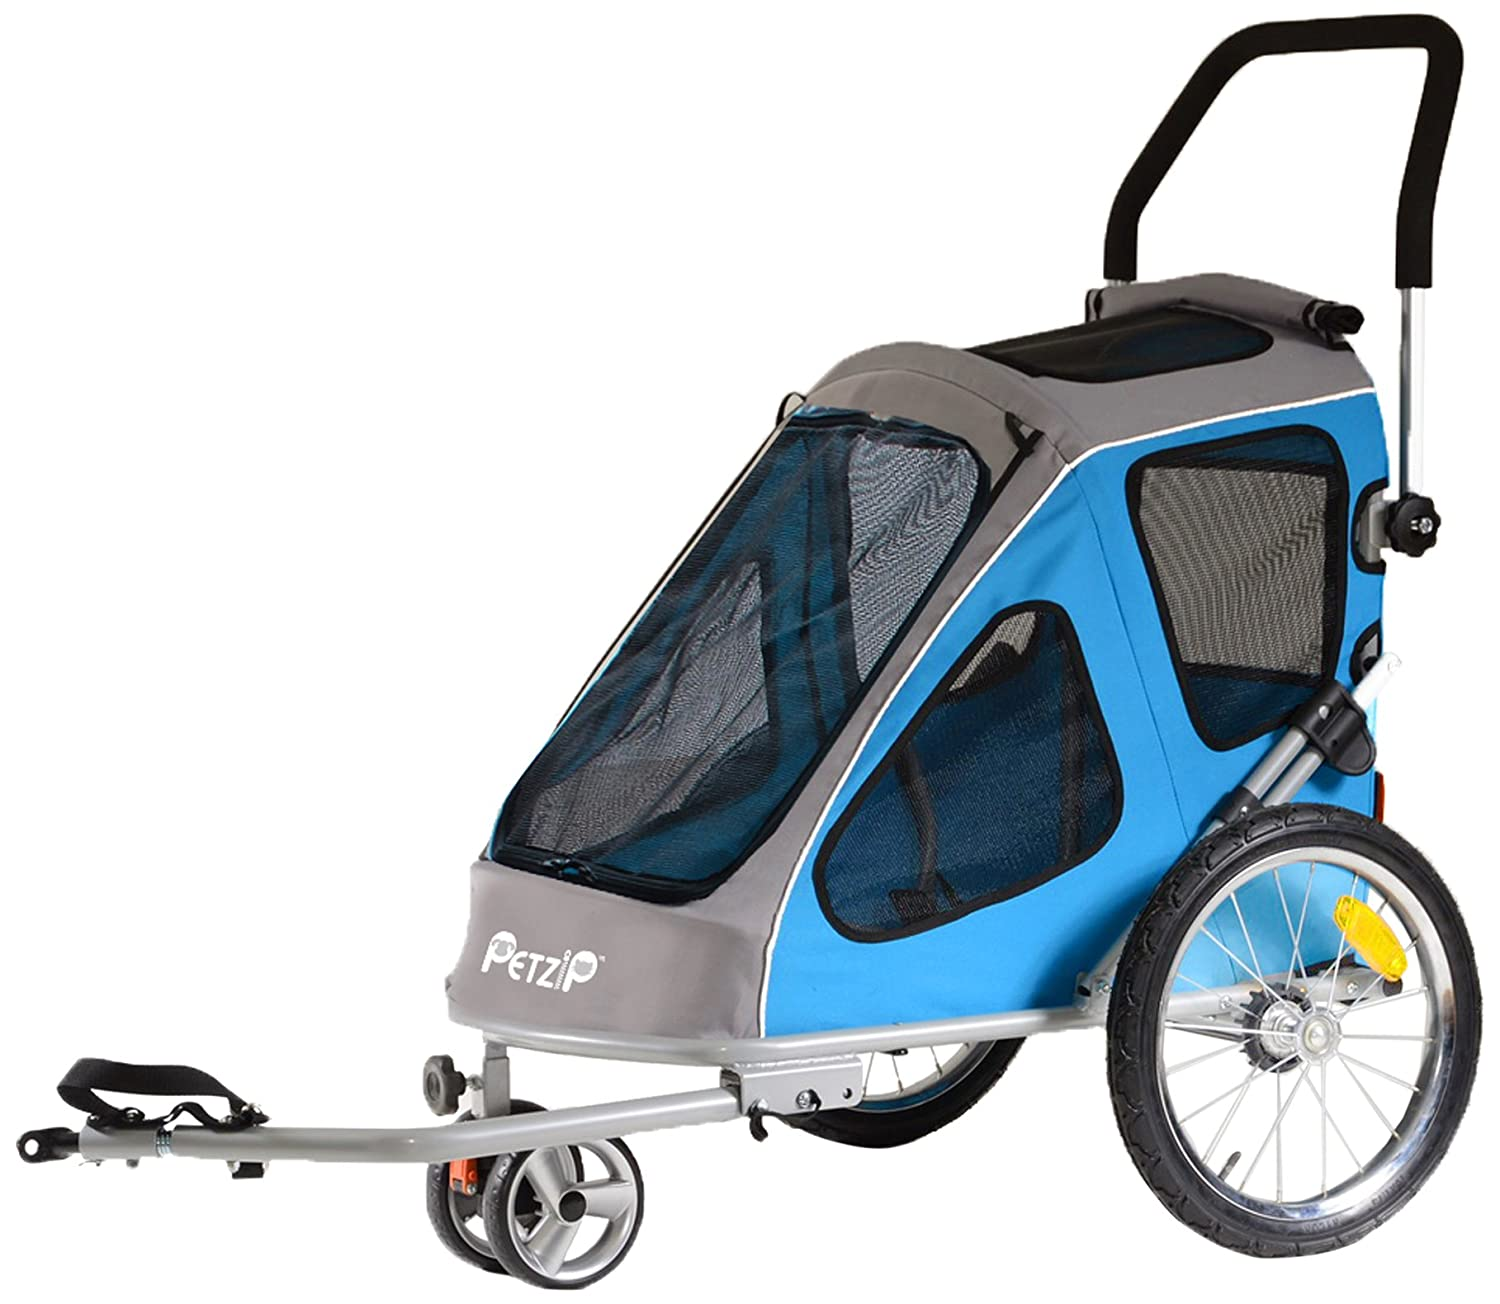 bluee Petzip Zoom Trailer Stroller, bluee